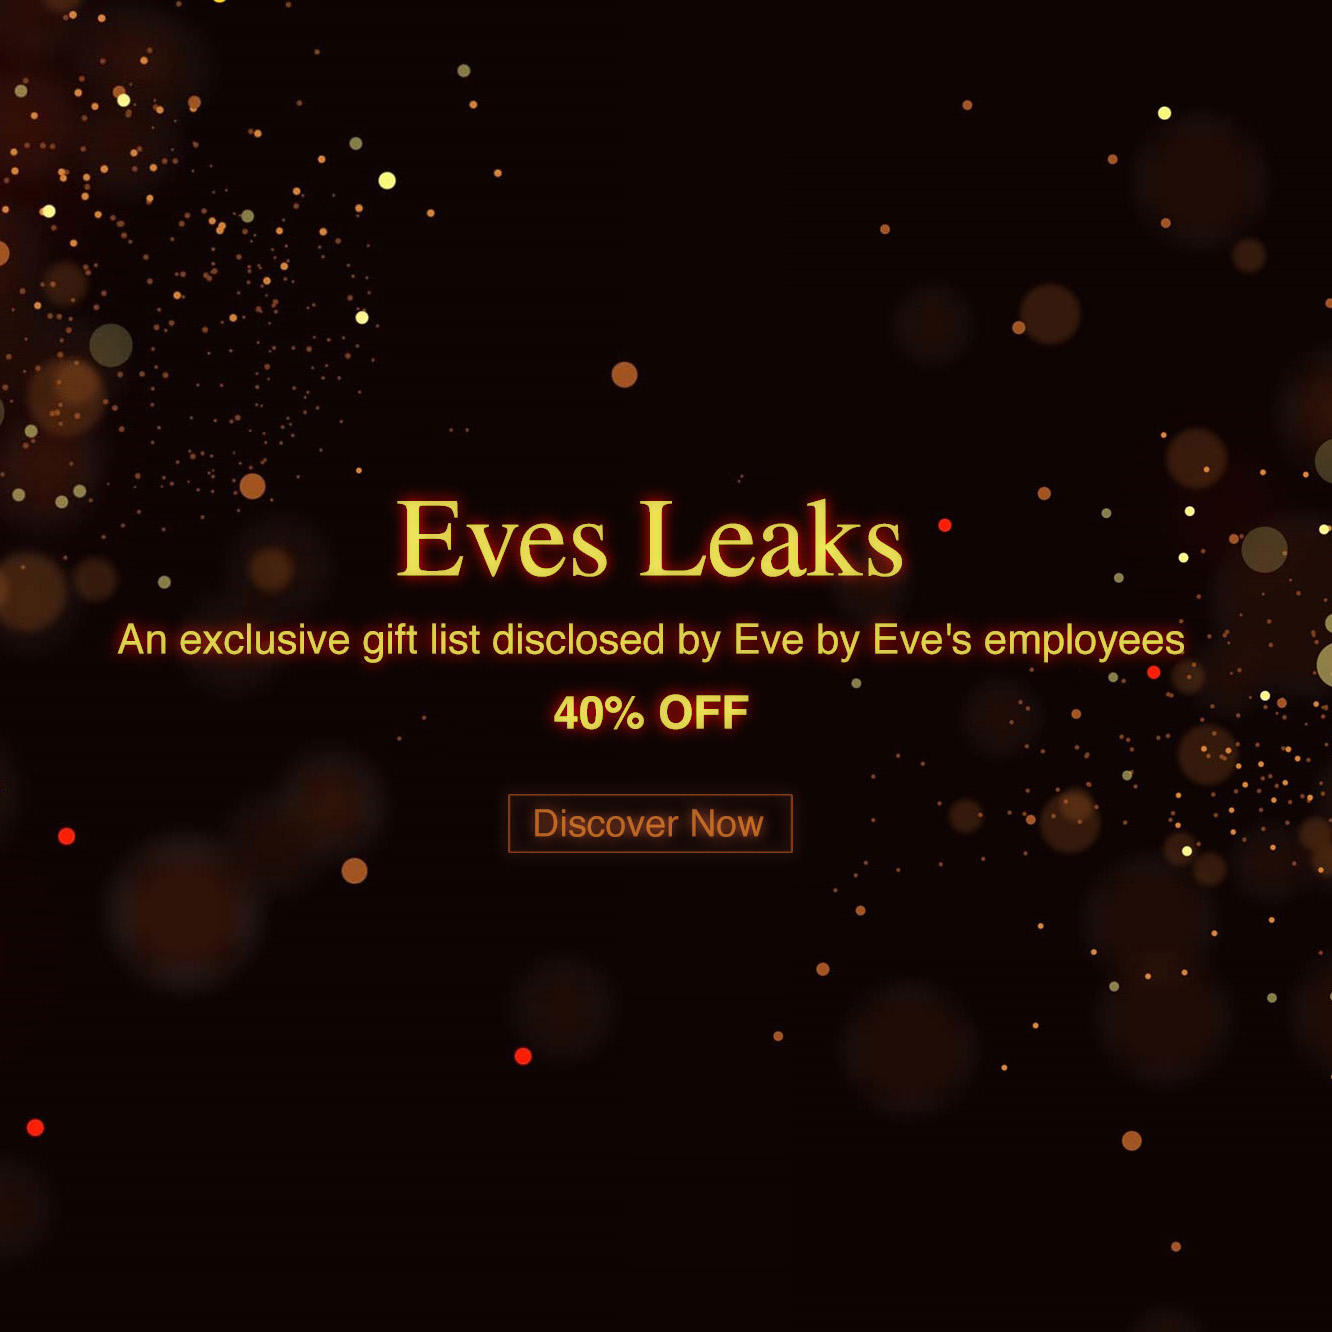 40% Off Top Faves EVES LEAKS An exclusive gift list disclosed by Eve by Eve's employees